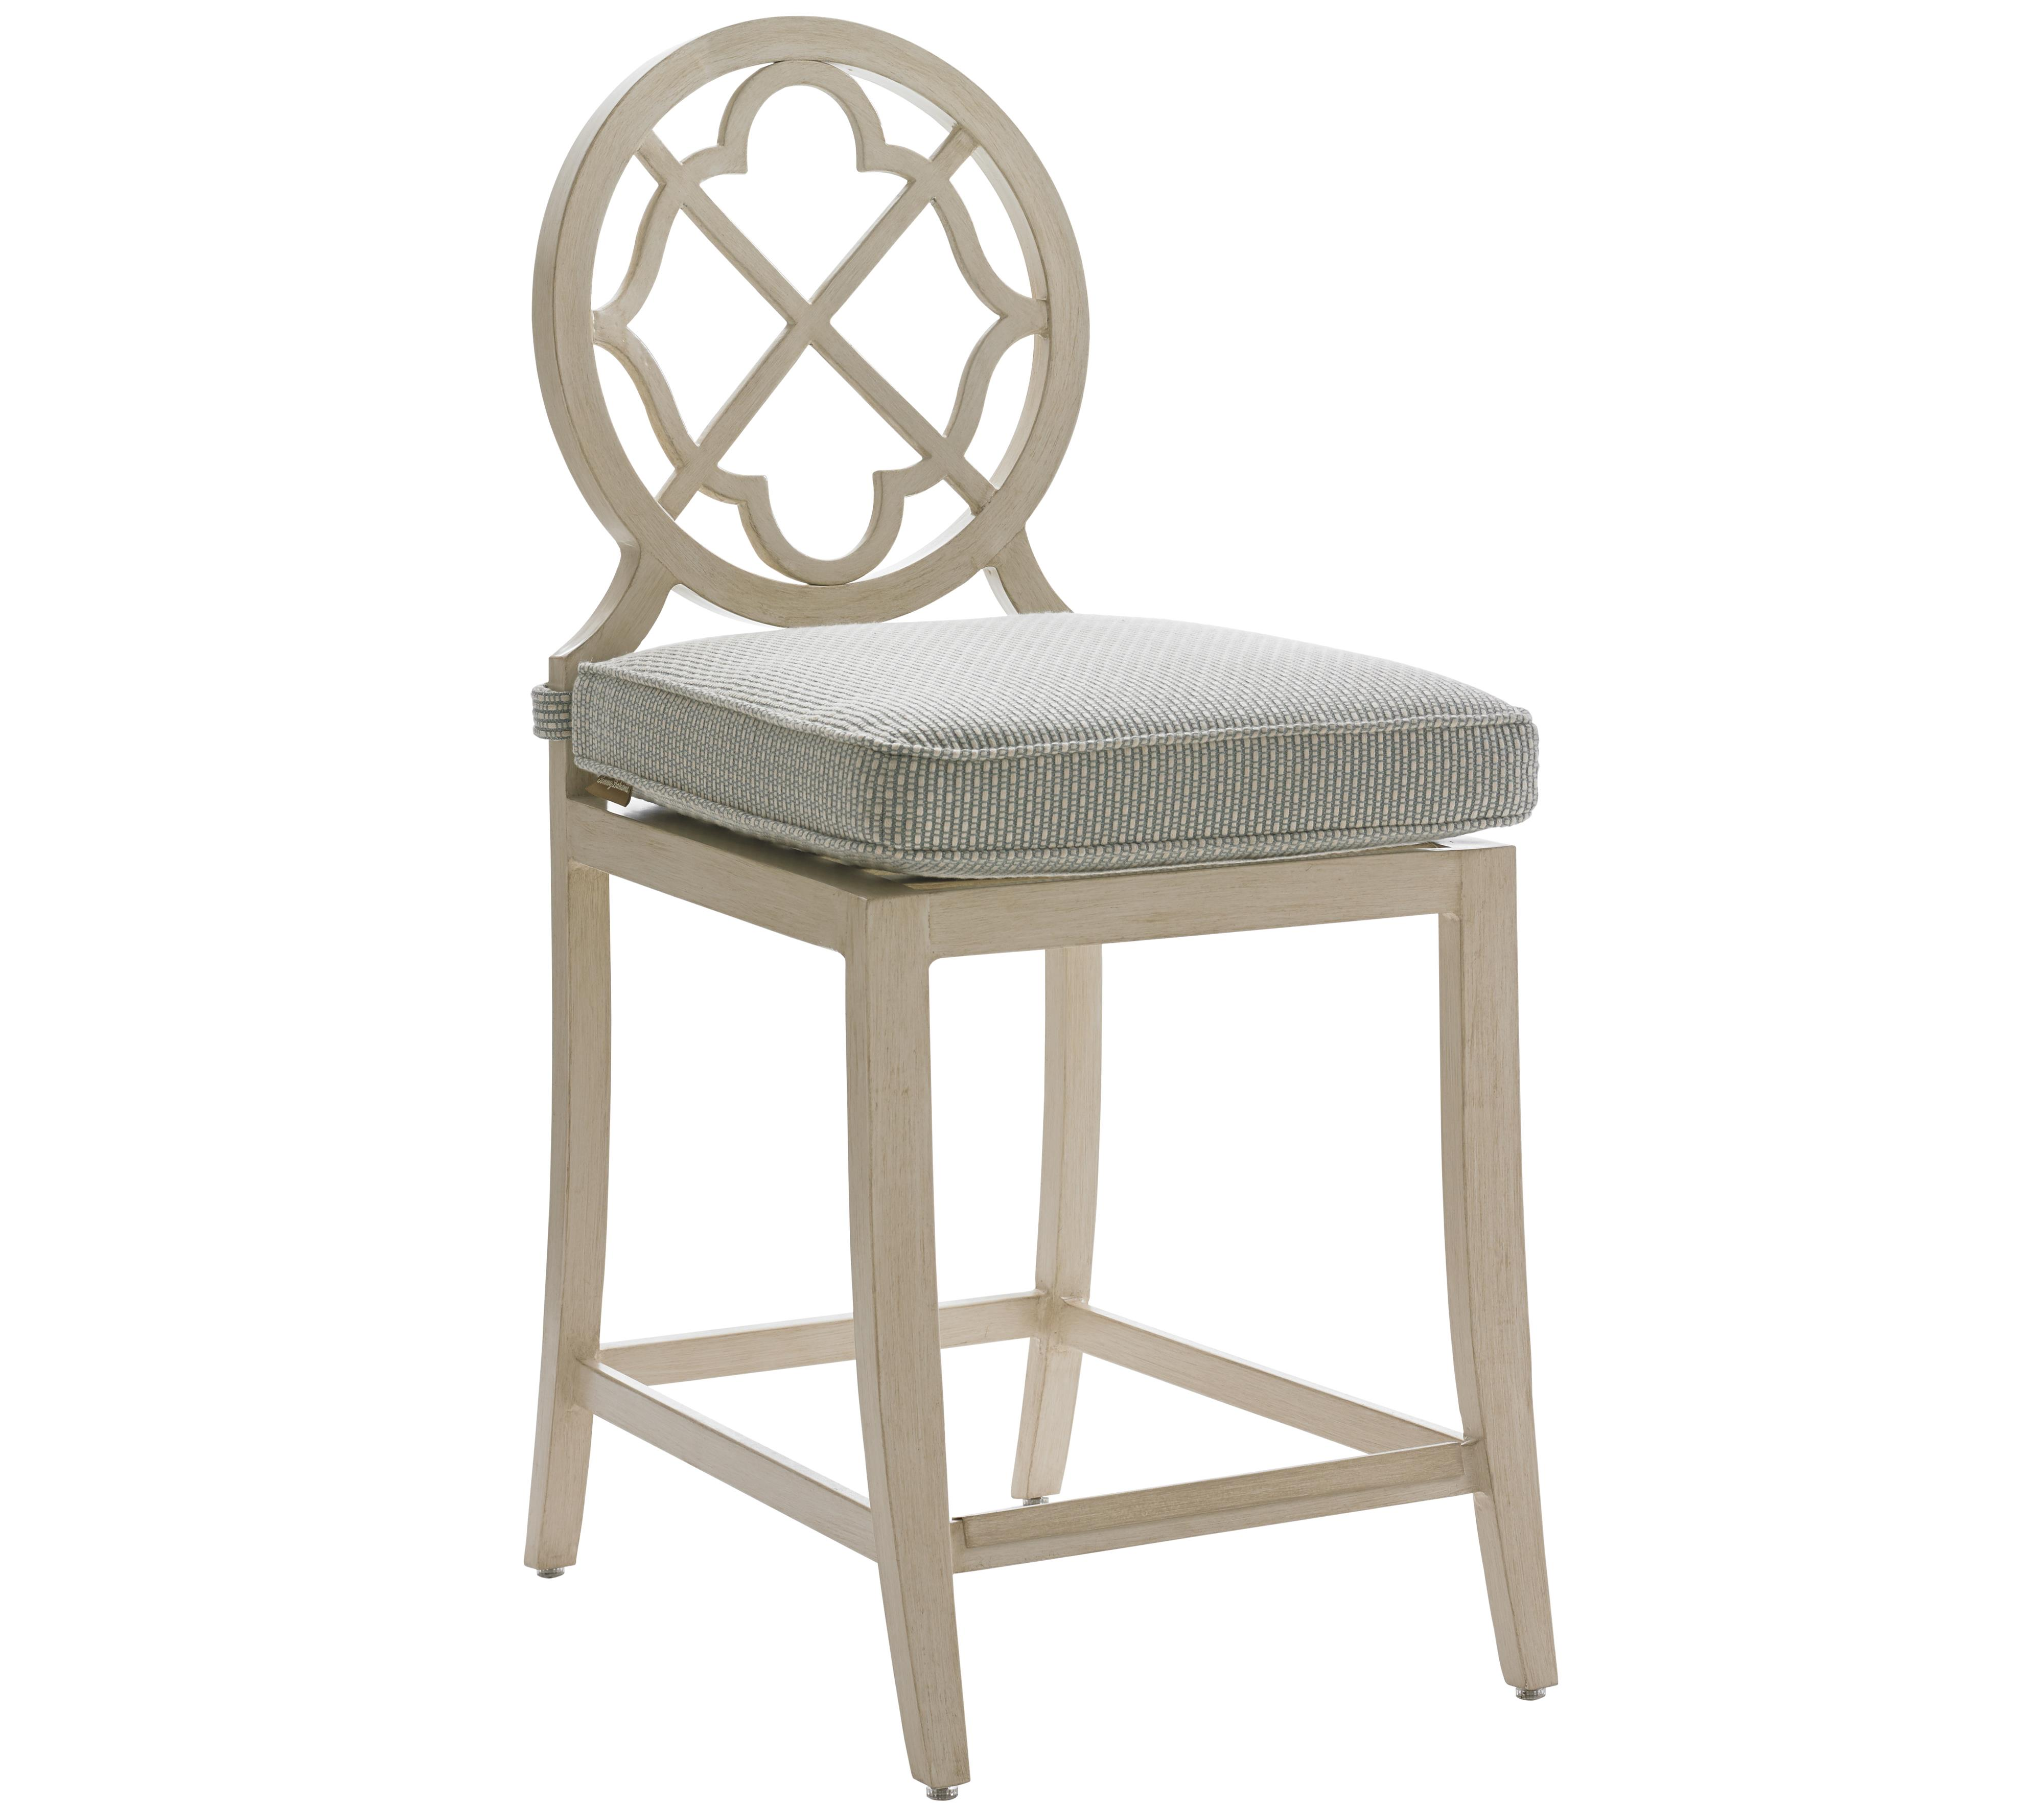 Misty Garden Counter Stool by Tommy Bahama Outdoor Living at Baer's Furniture